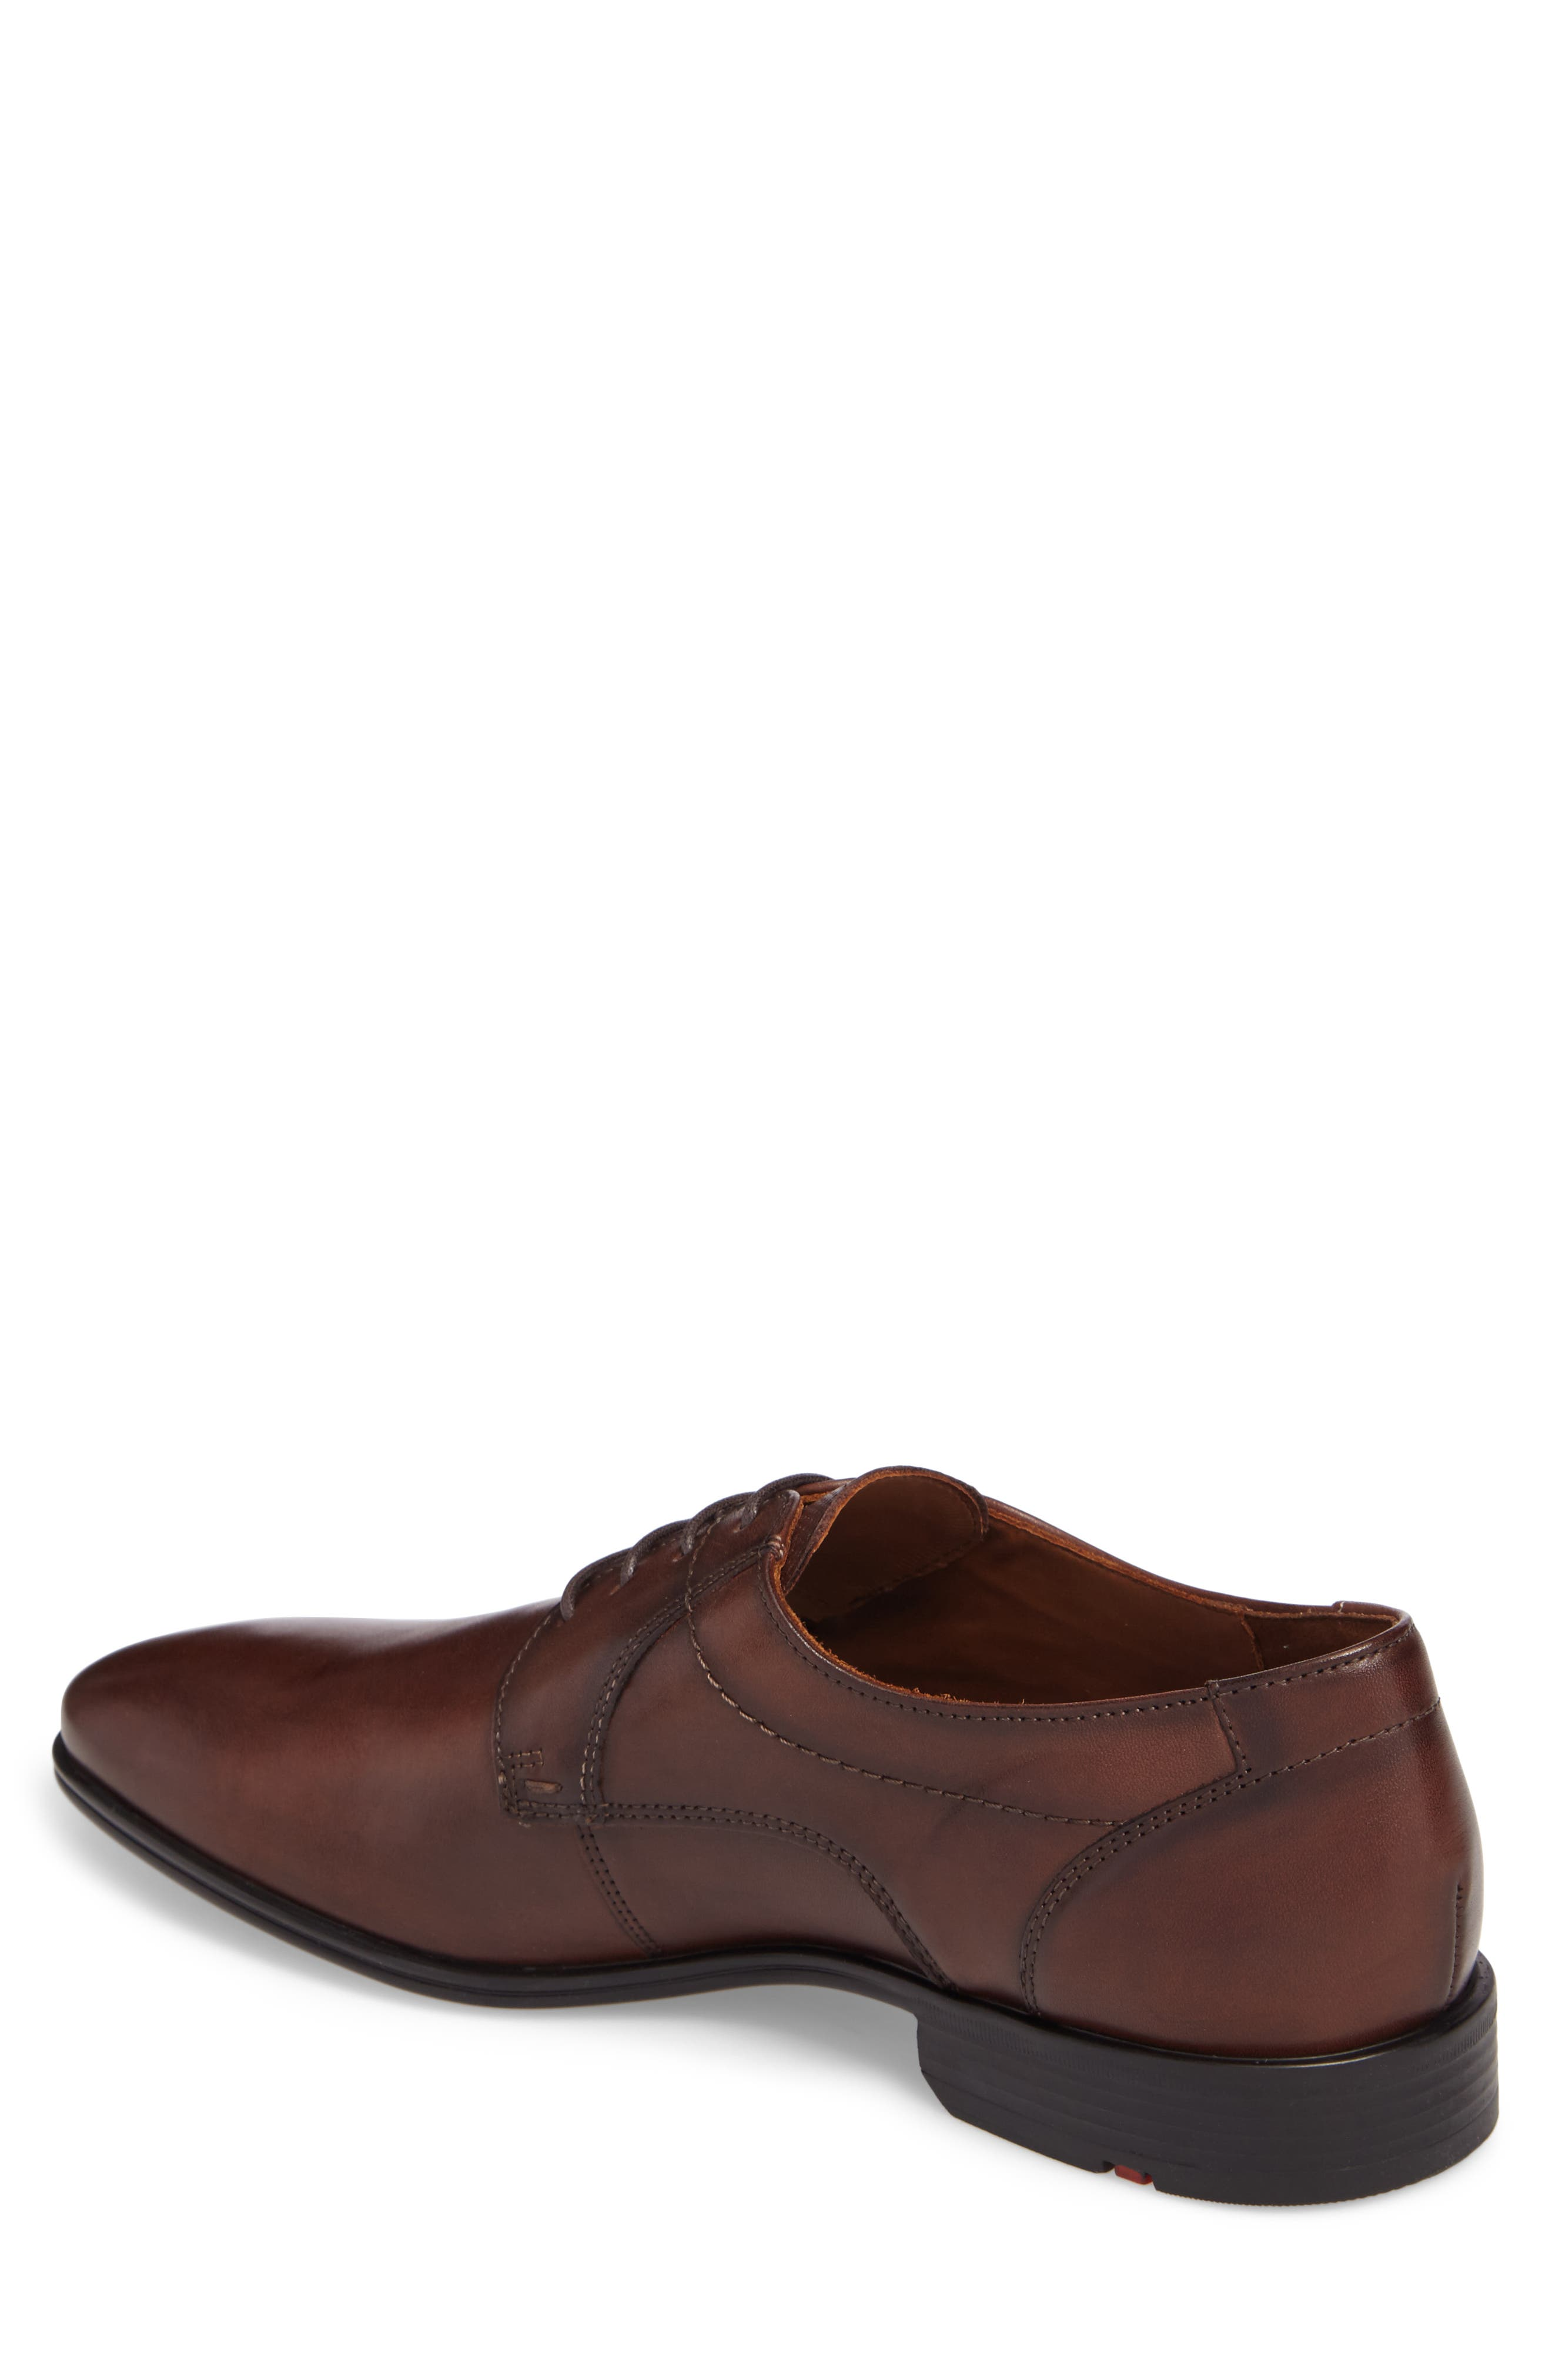 Osmond Plain Toe Derby,                             Alternate thumbnail 2, color,                             T.D.Moro Leather